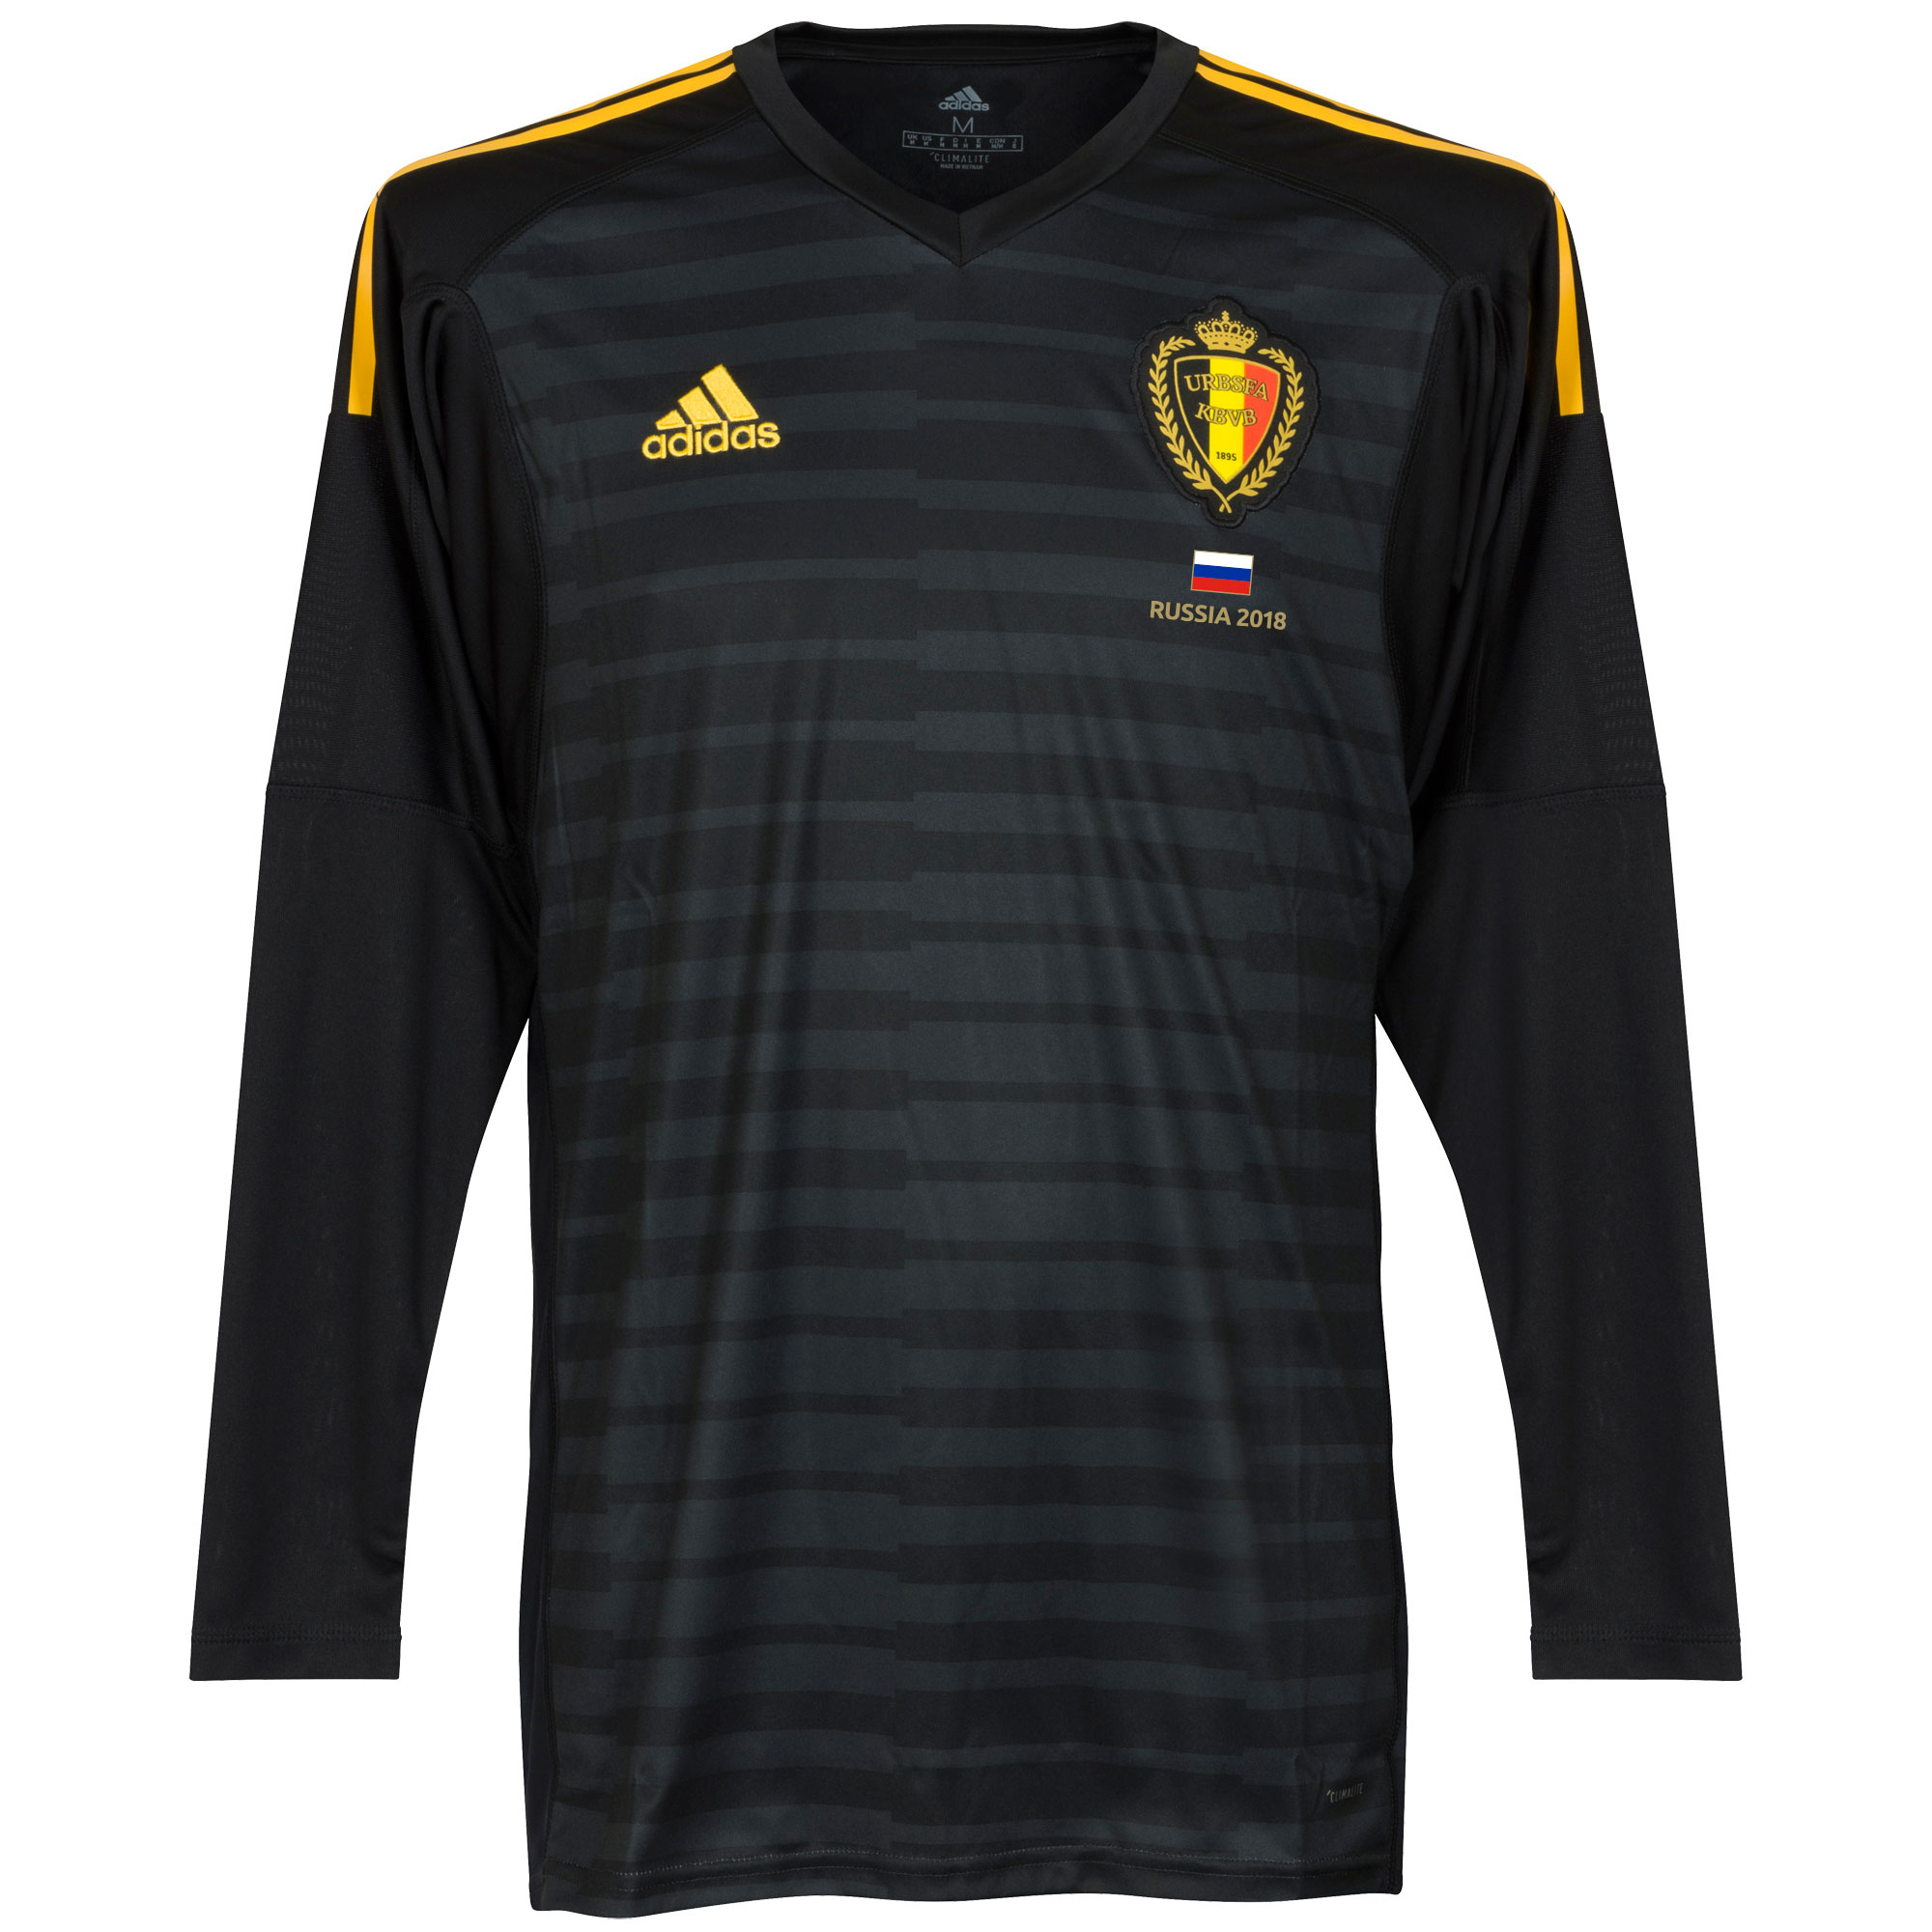 Belgium Home Goalkeeper Jersey 2018 / 2019 + FREE Russia 2018 Commemorative Transfer - 54